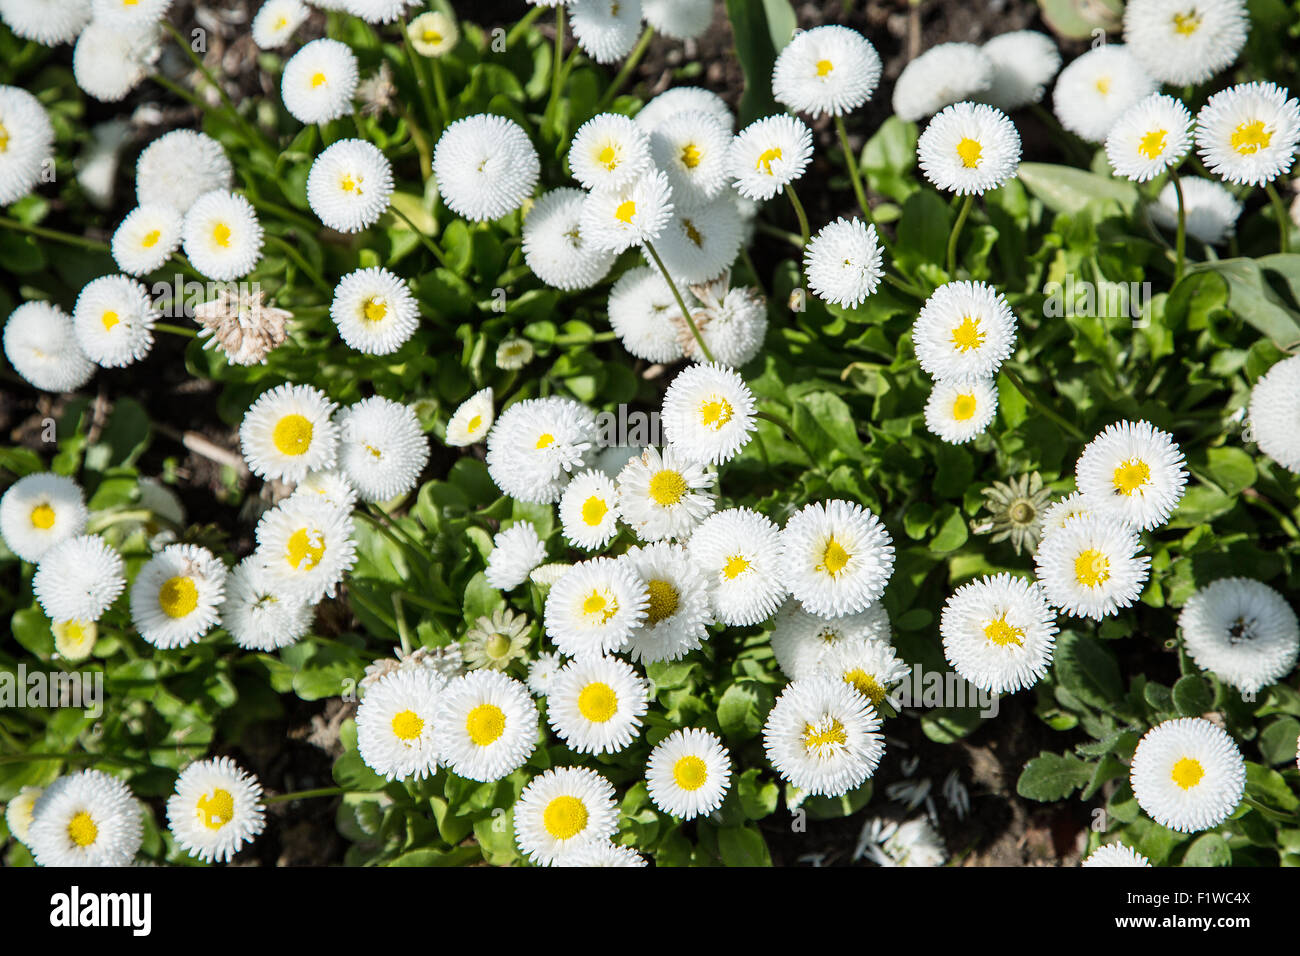 White bellies  flowers. Close-up shot. Nature background. - Stock Image